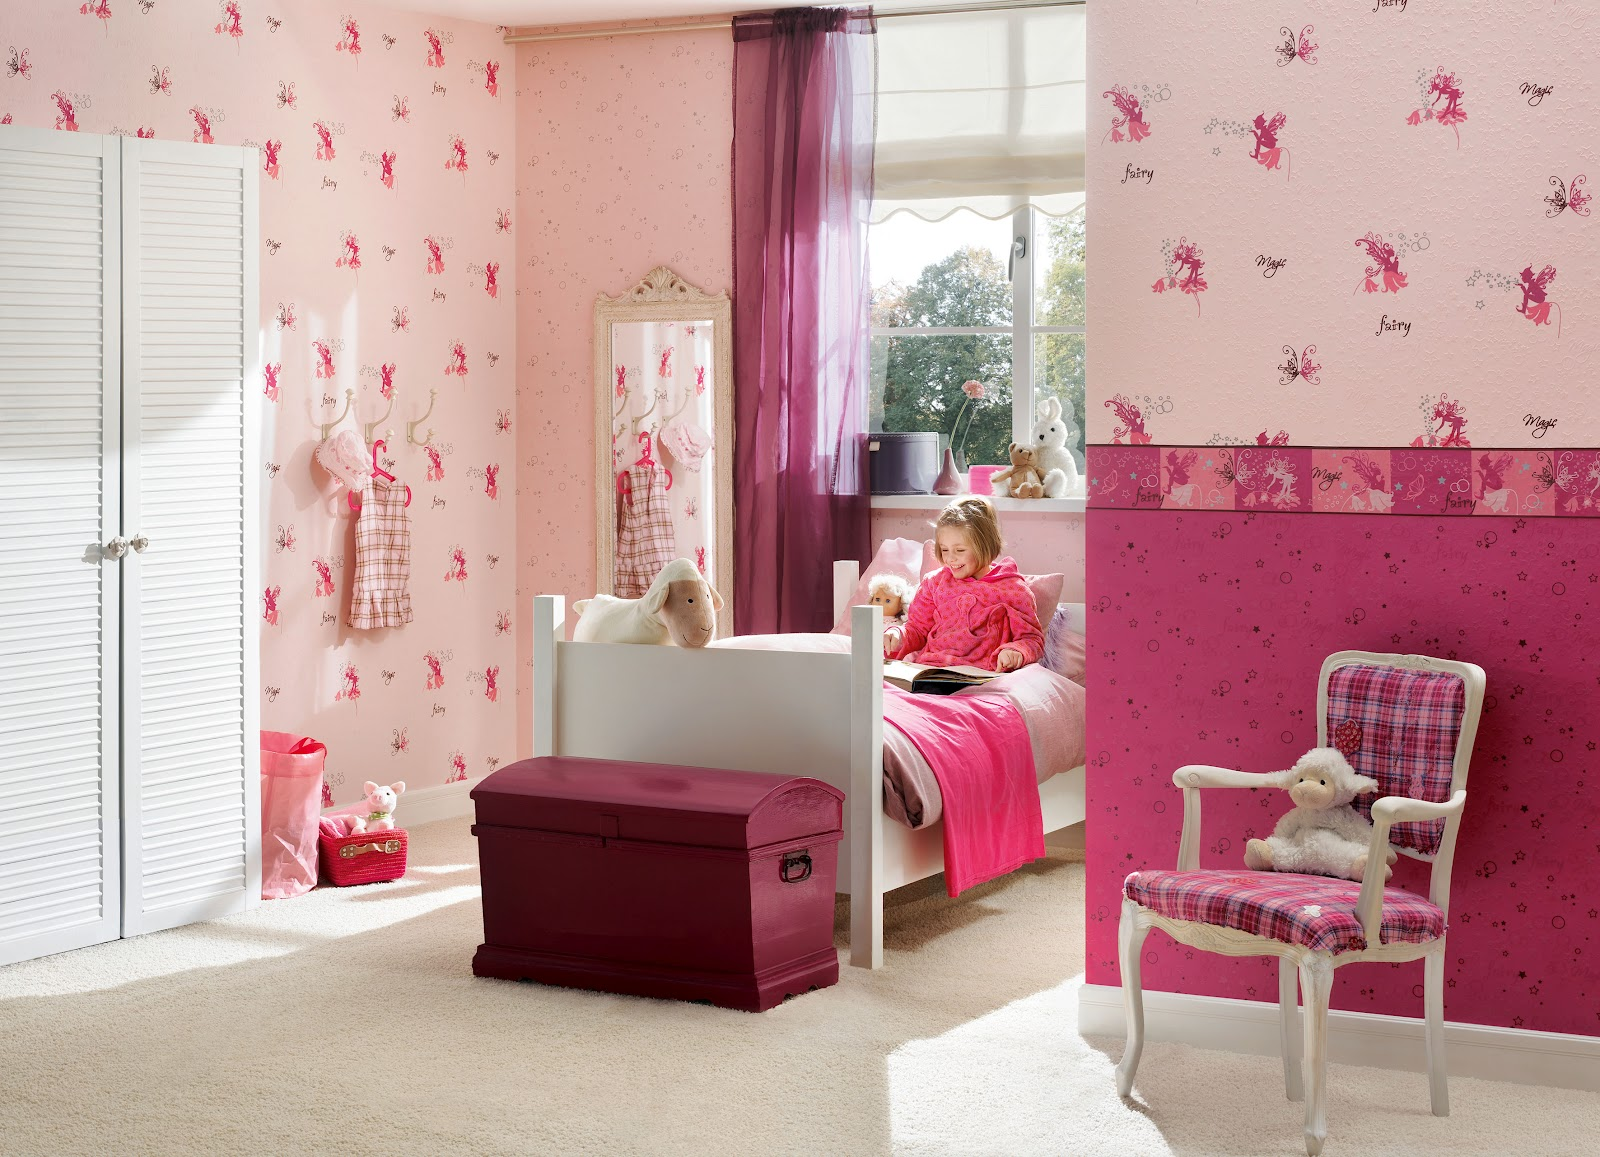 Wallpaper Bedrooms Designs Wallpaper For Bedrooms